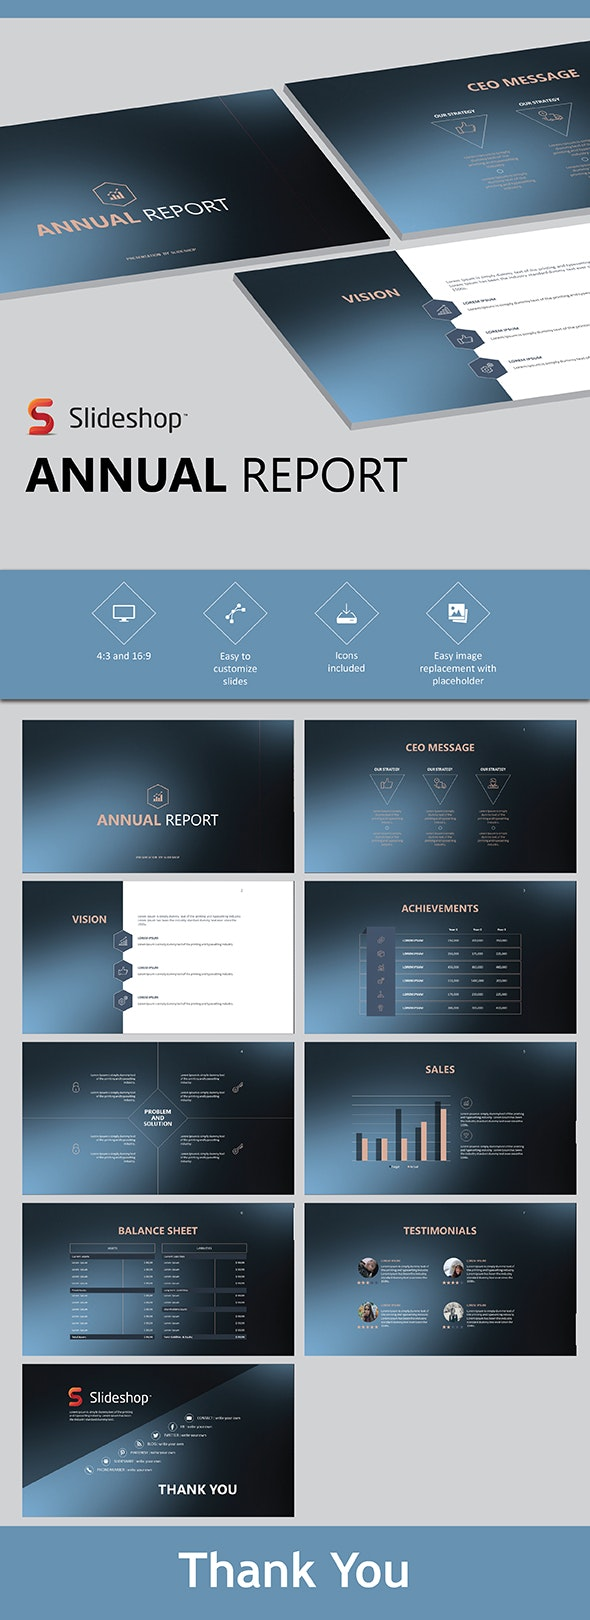 Annual Report - PowerPoint Templates Presentation Templates